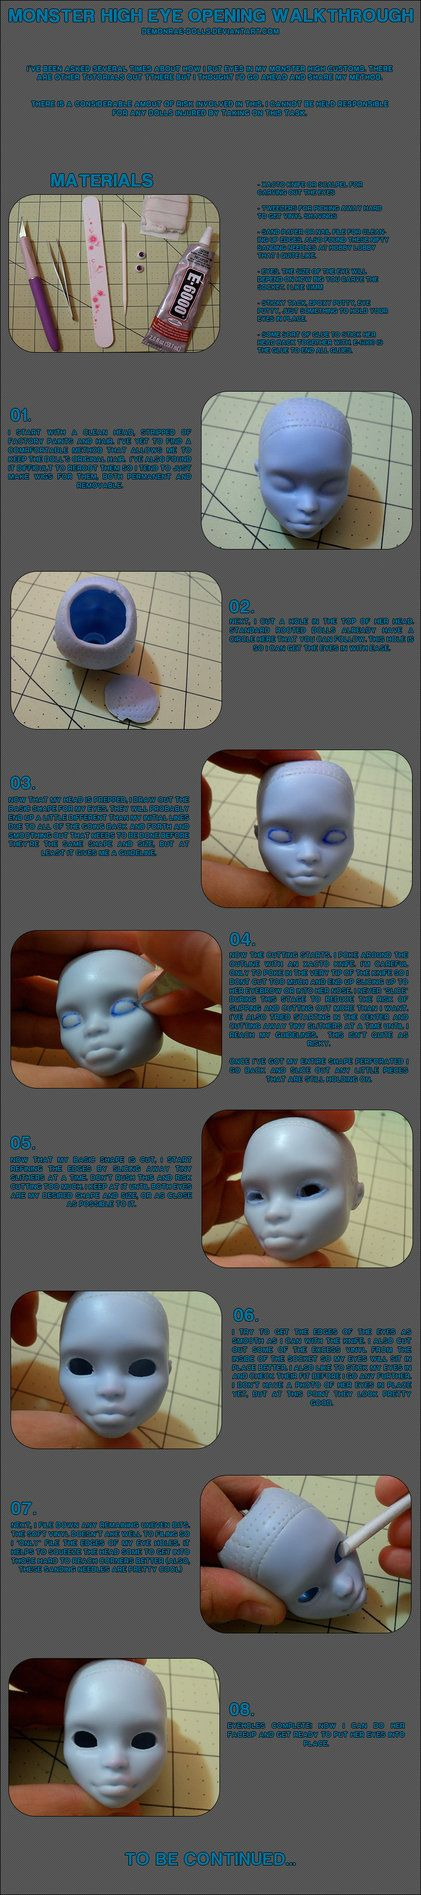 Monster High glass eye opening tutorial. Unfortunately doesn't show installing the eyes and closing the head.